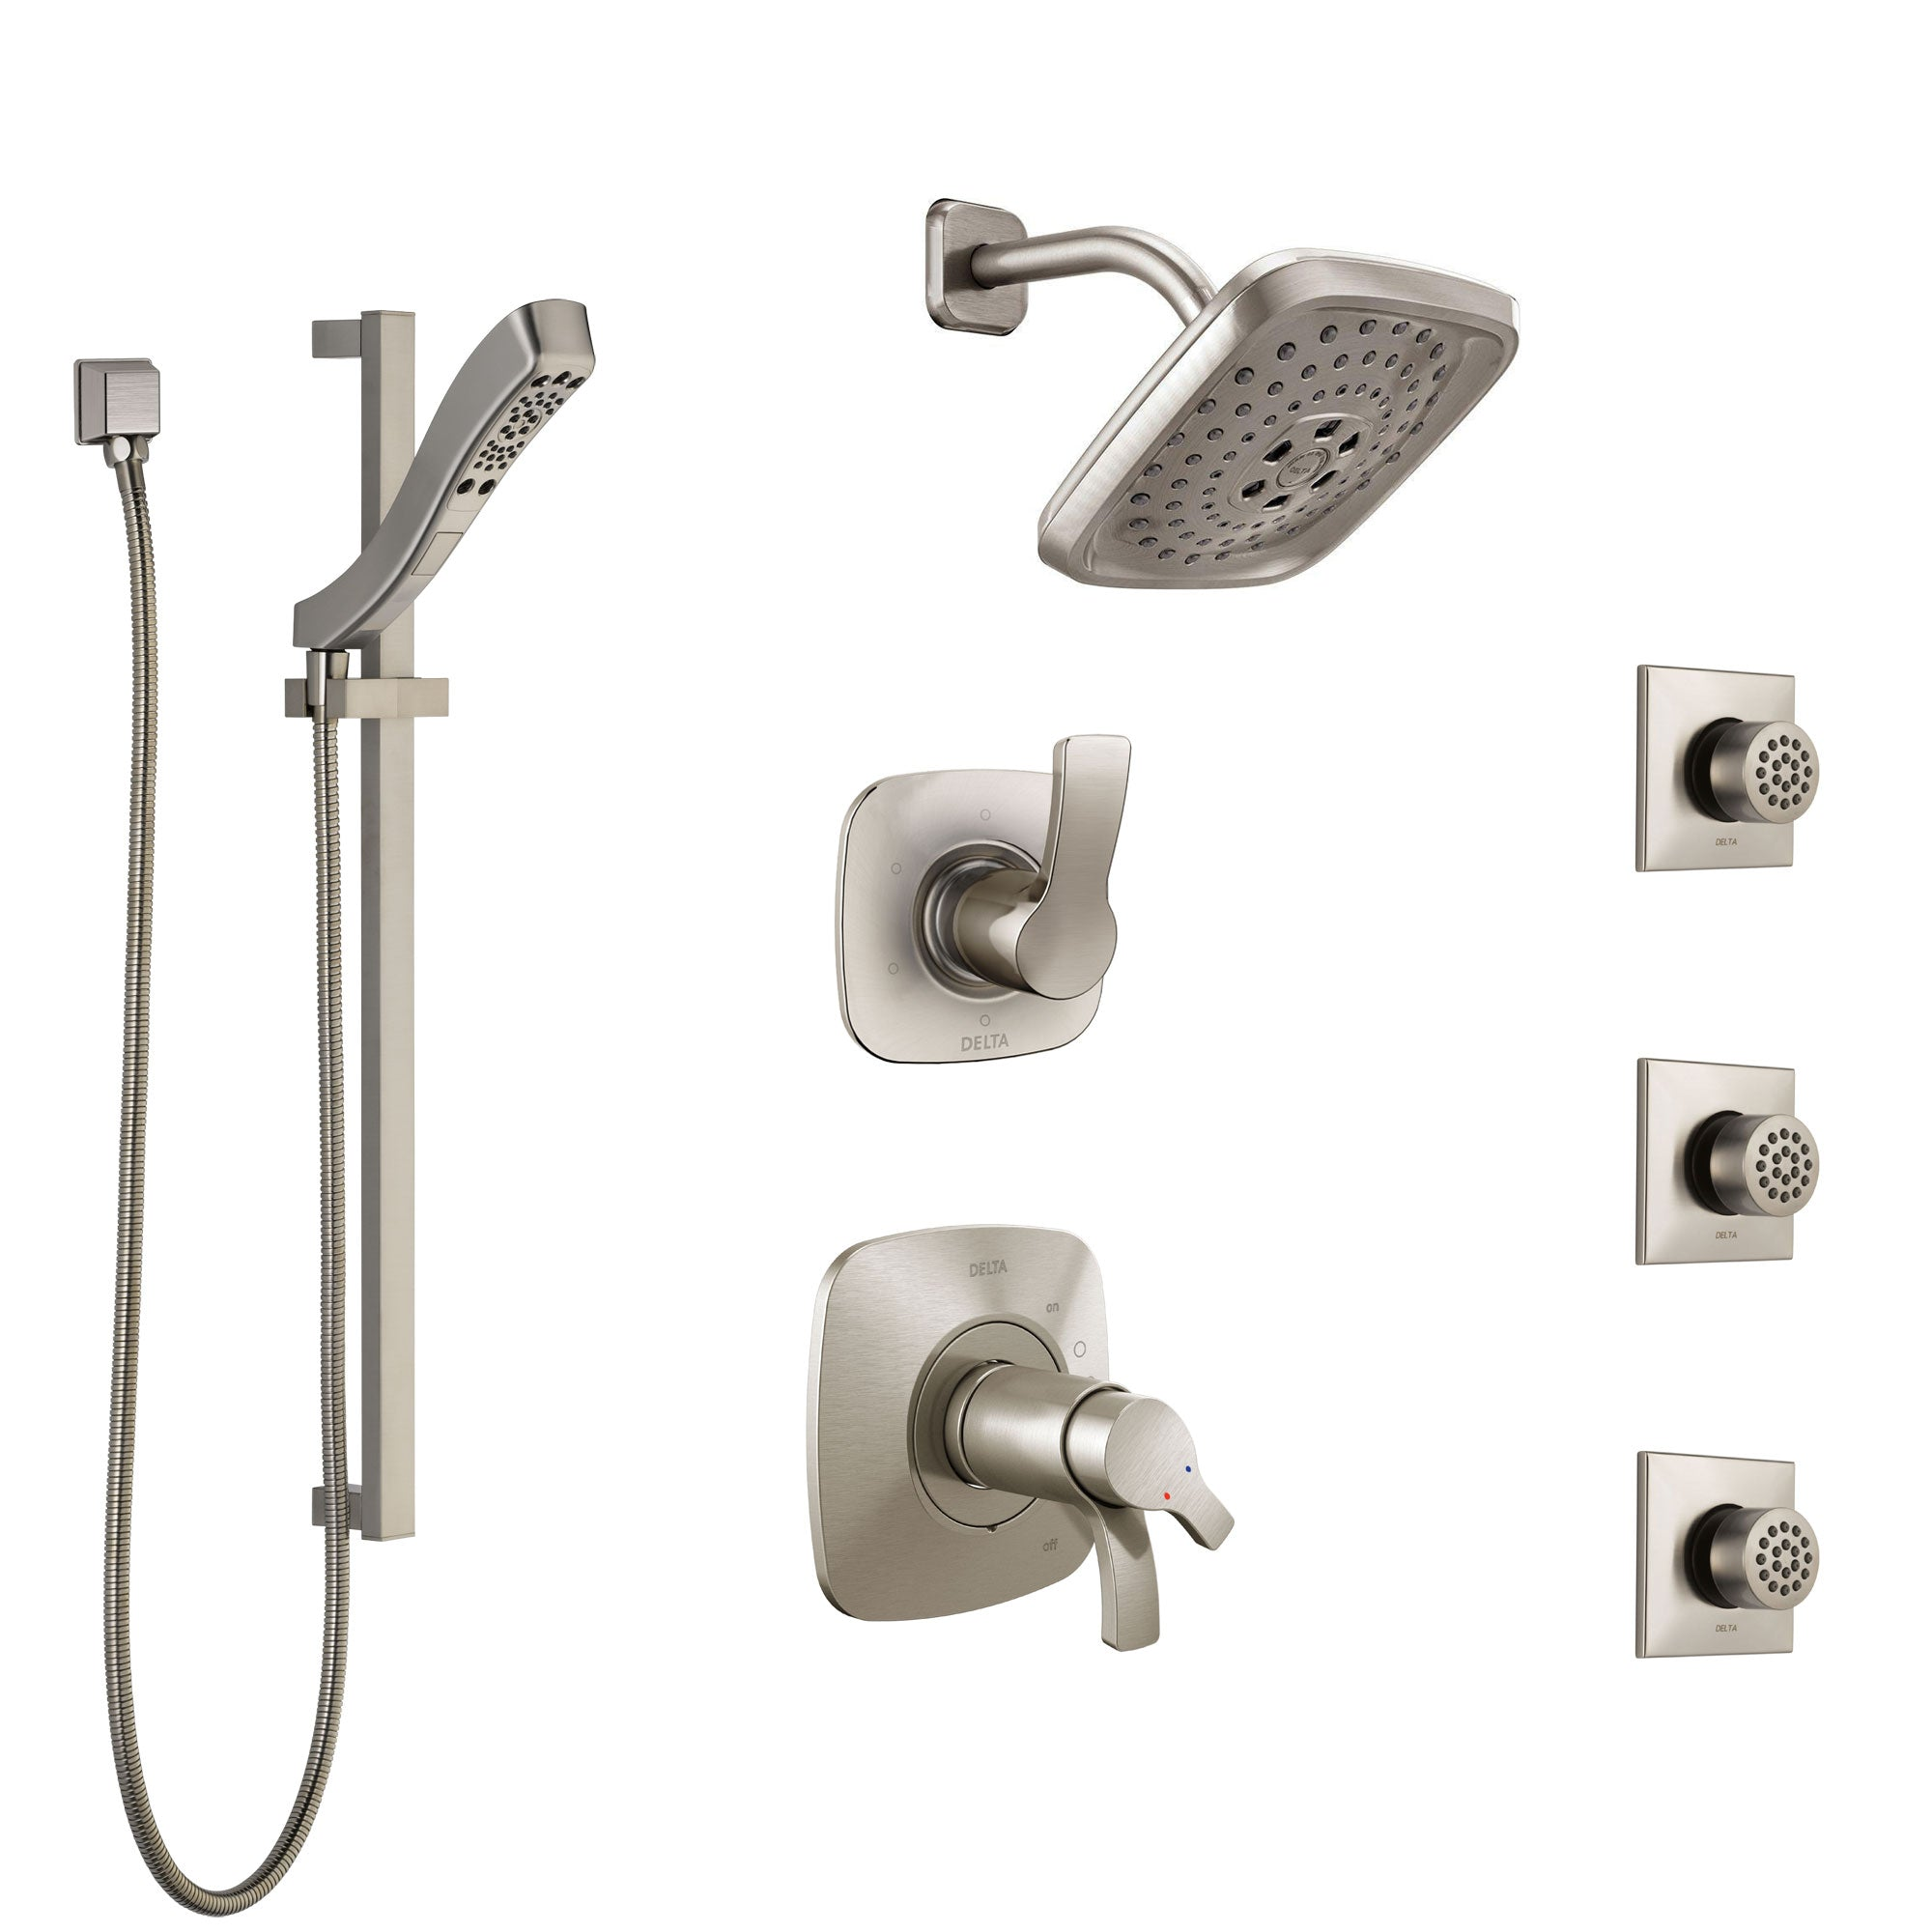 Delta Tesla Dual Thermostatic Control Stainless Steel Finish Shower System, Diverter, Showerhead, 3 Body Sprays, and Hand Shower SS17T2521SS3